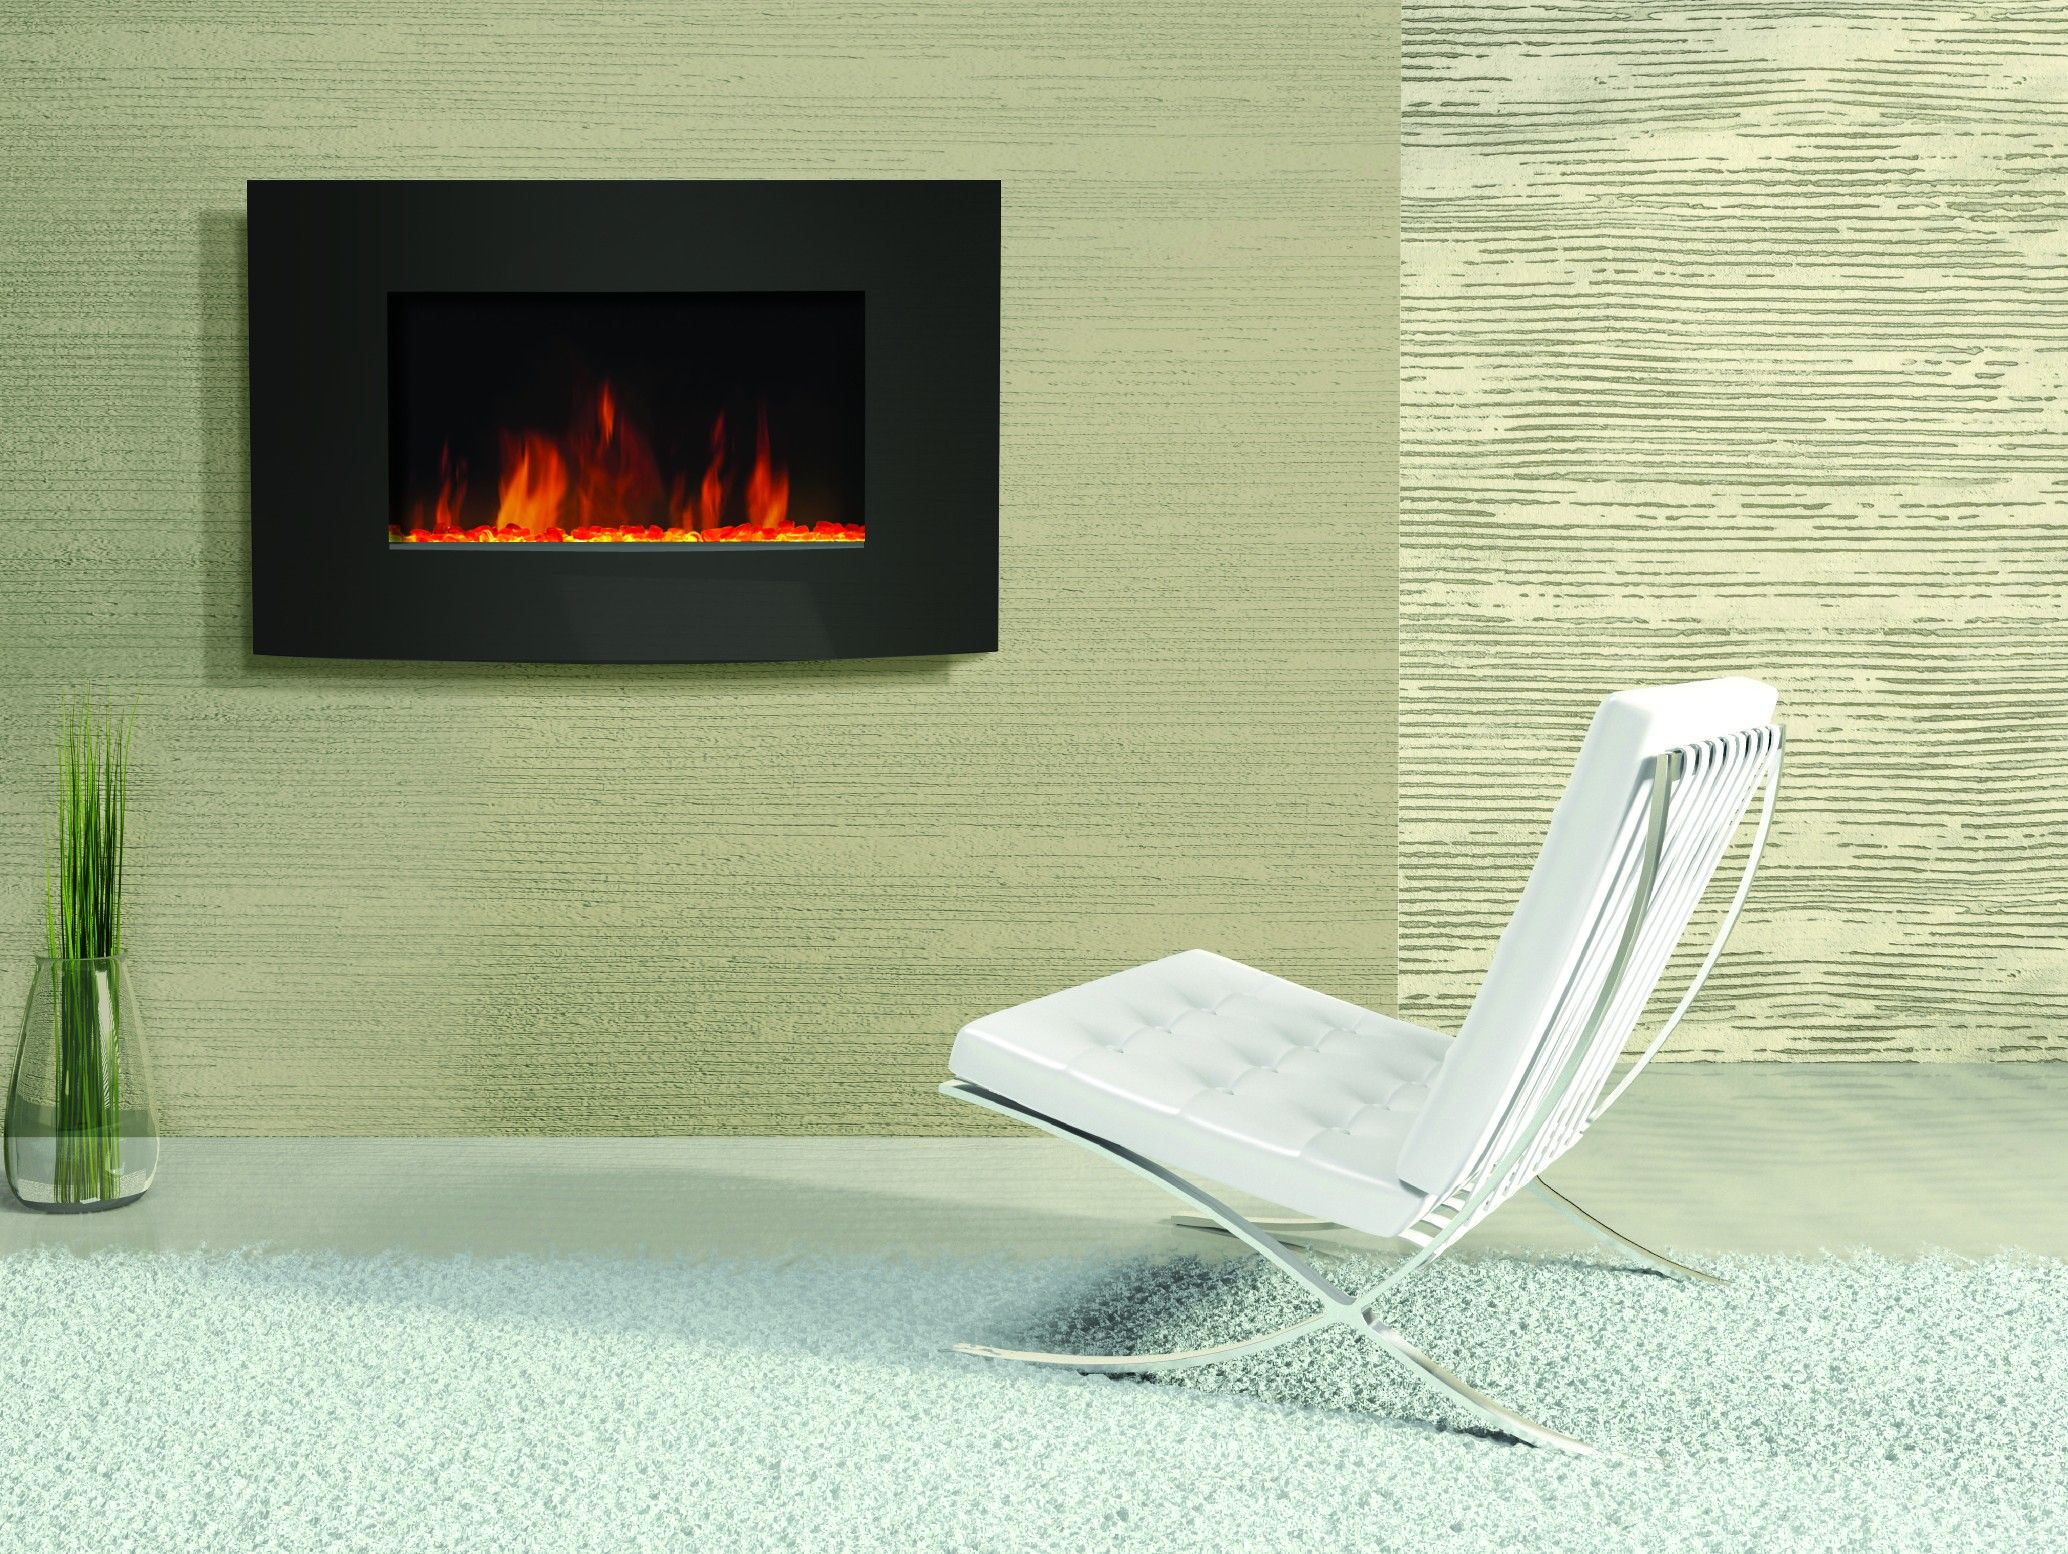 Amantii Horizontal Convex Electric Wall Mount Fireplace | Fireplaces ...